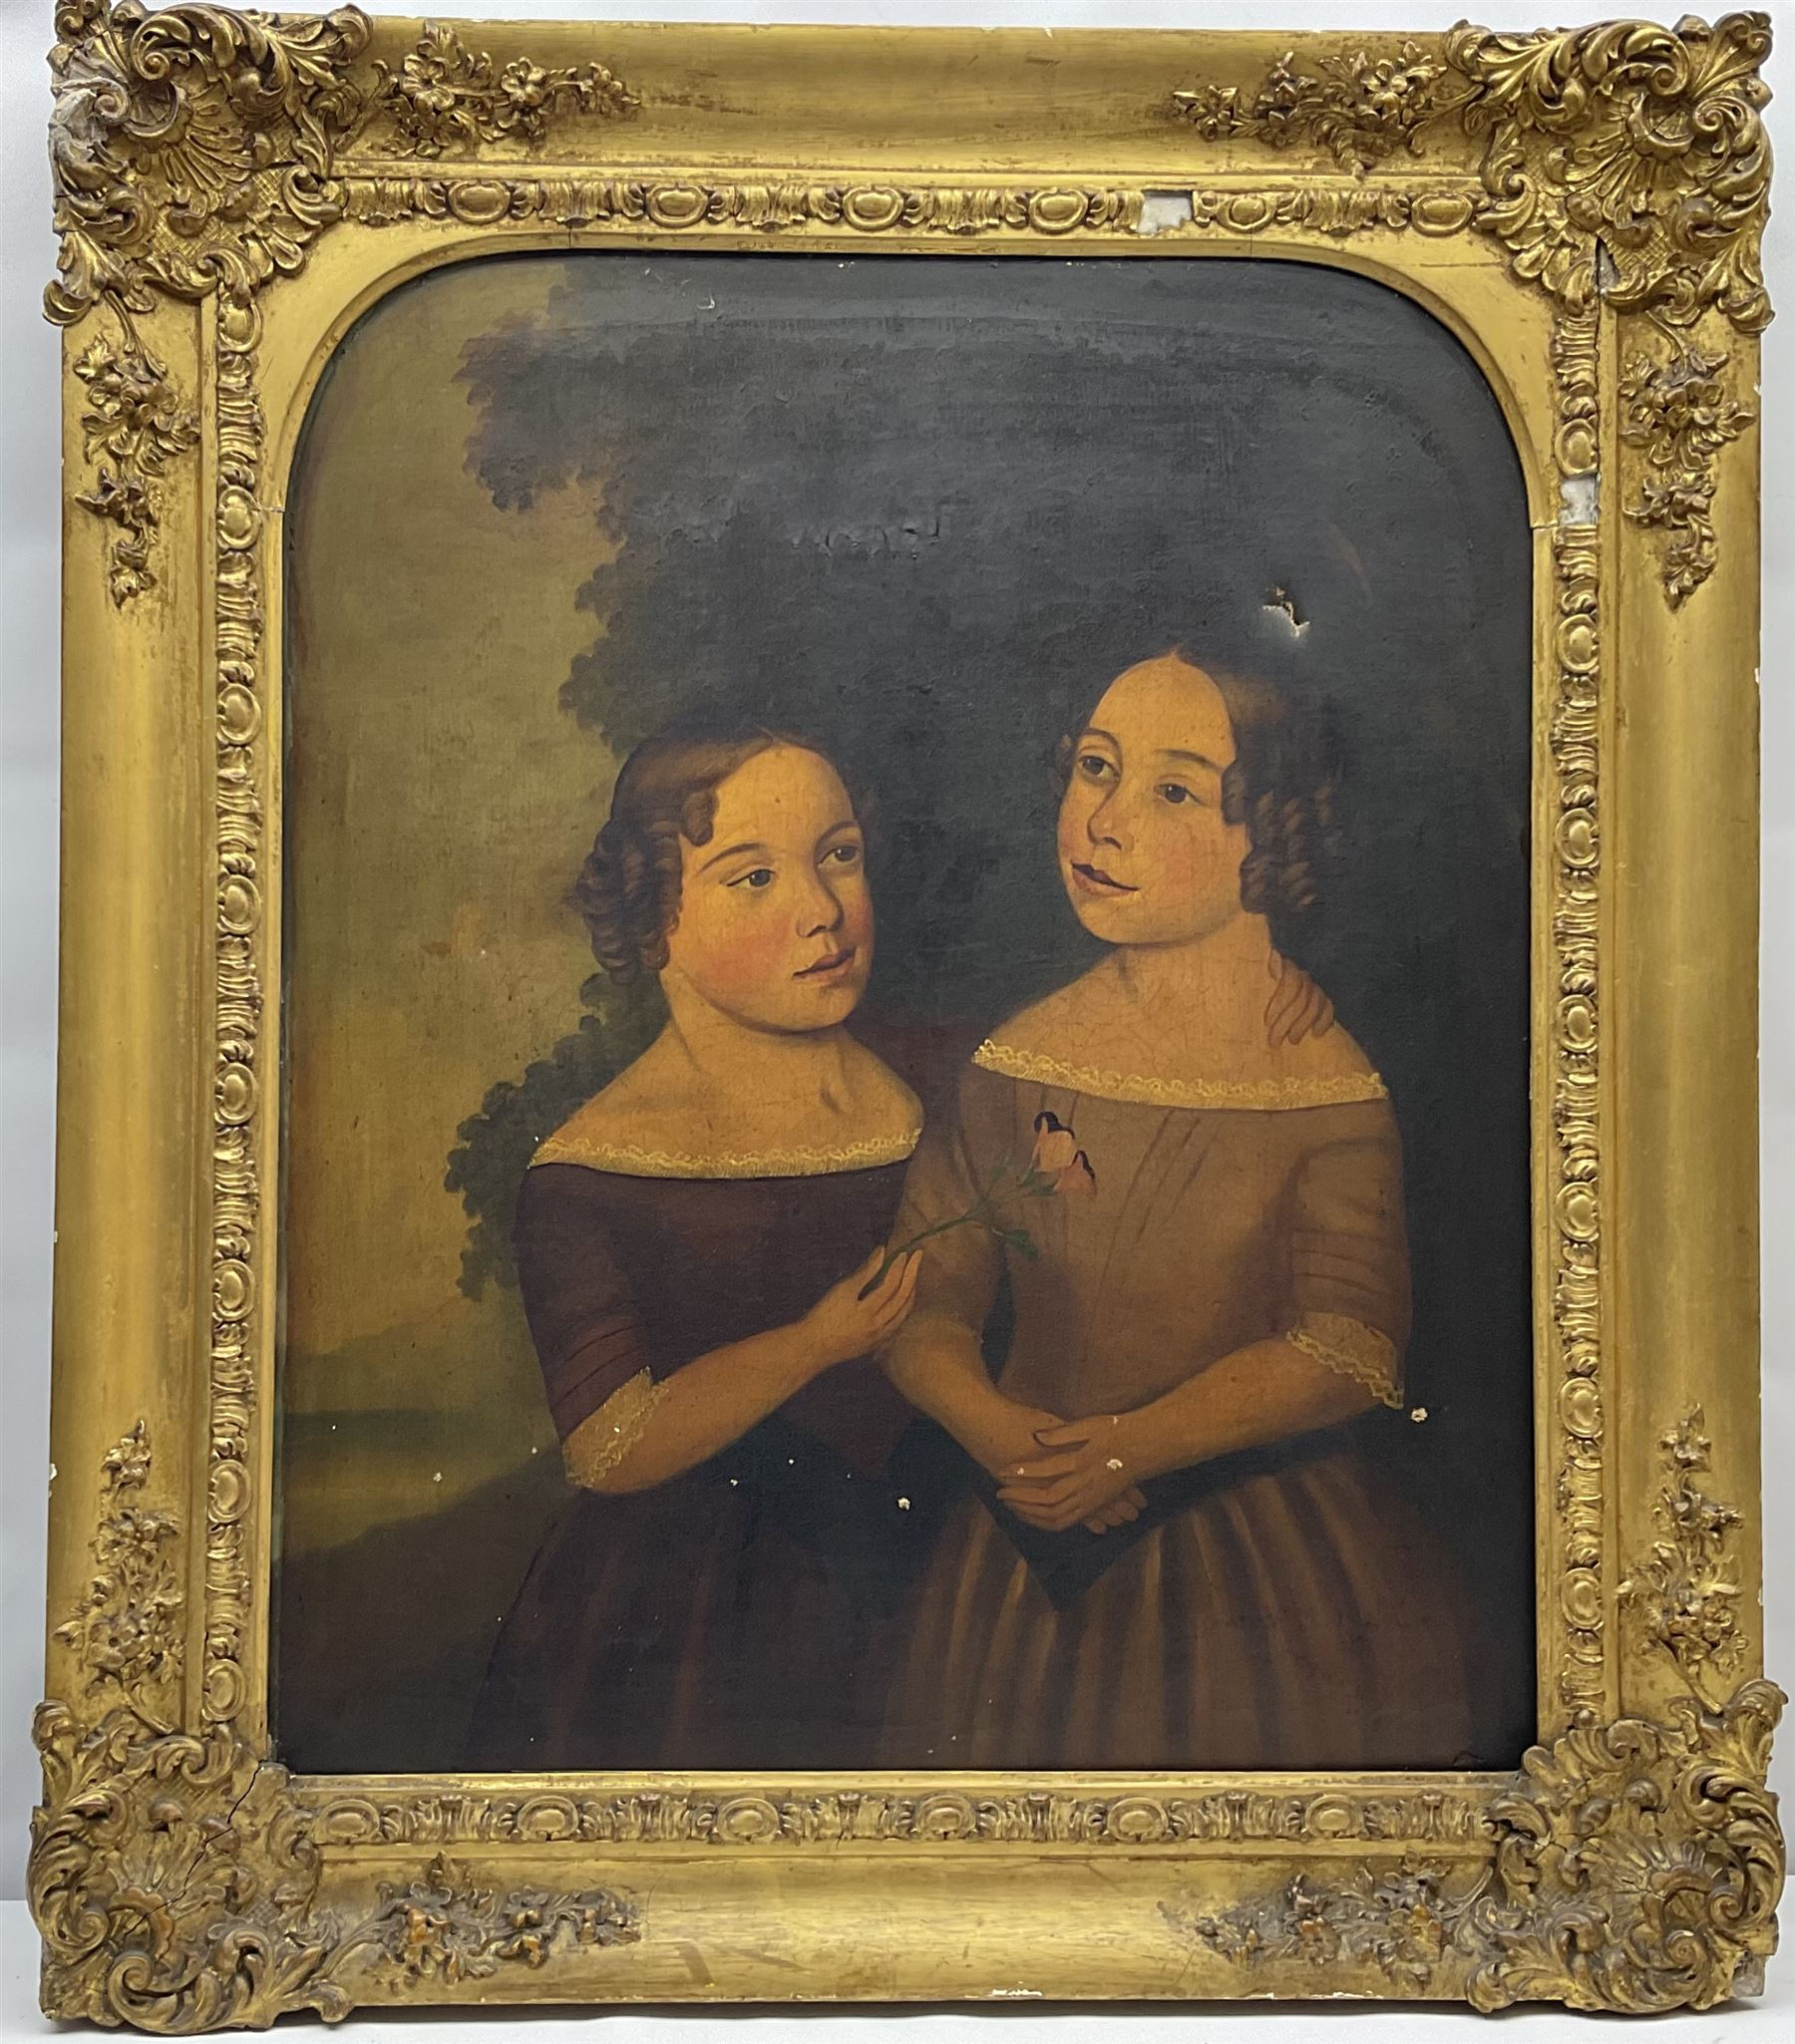 English Primitive School (Early/mid 19th century): Portrait of Two Girls - Image 4 of 4